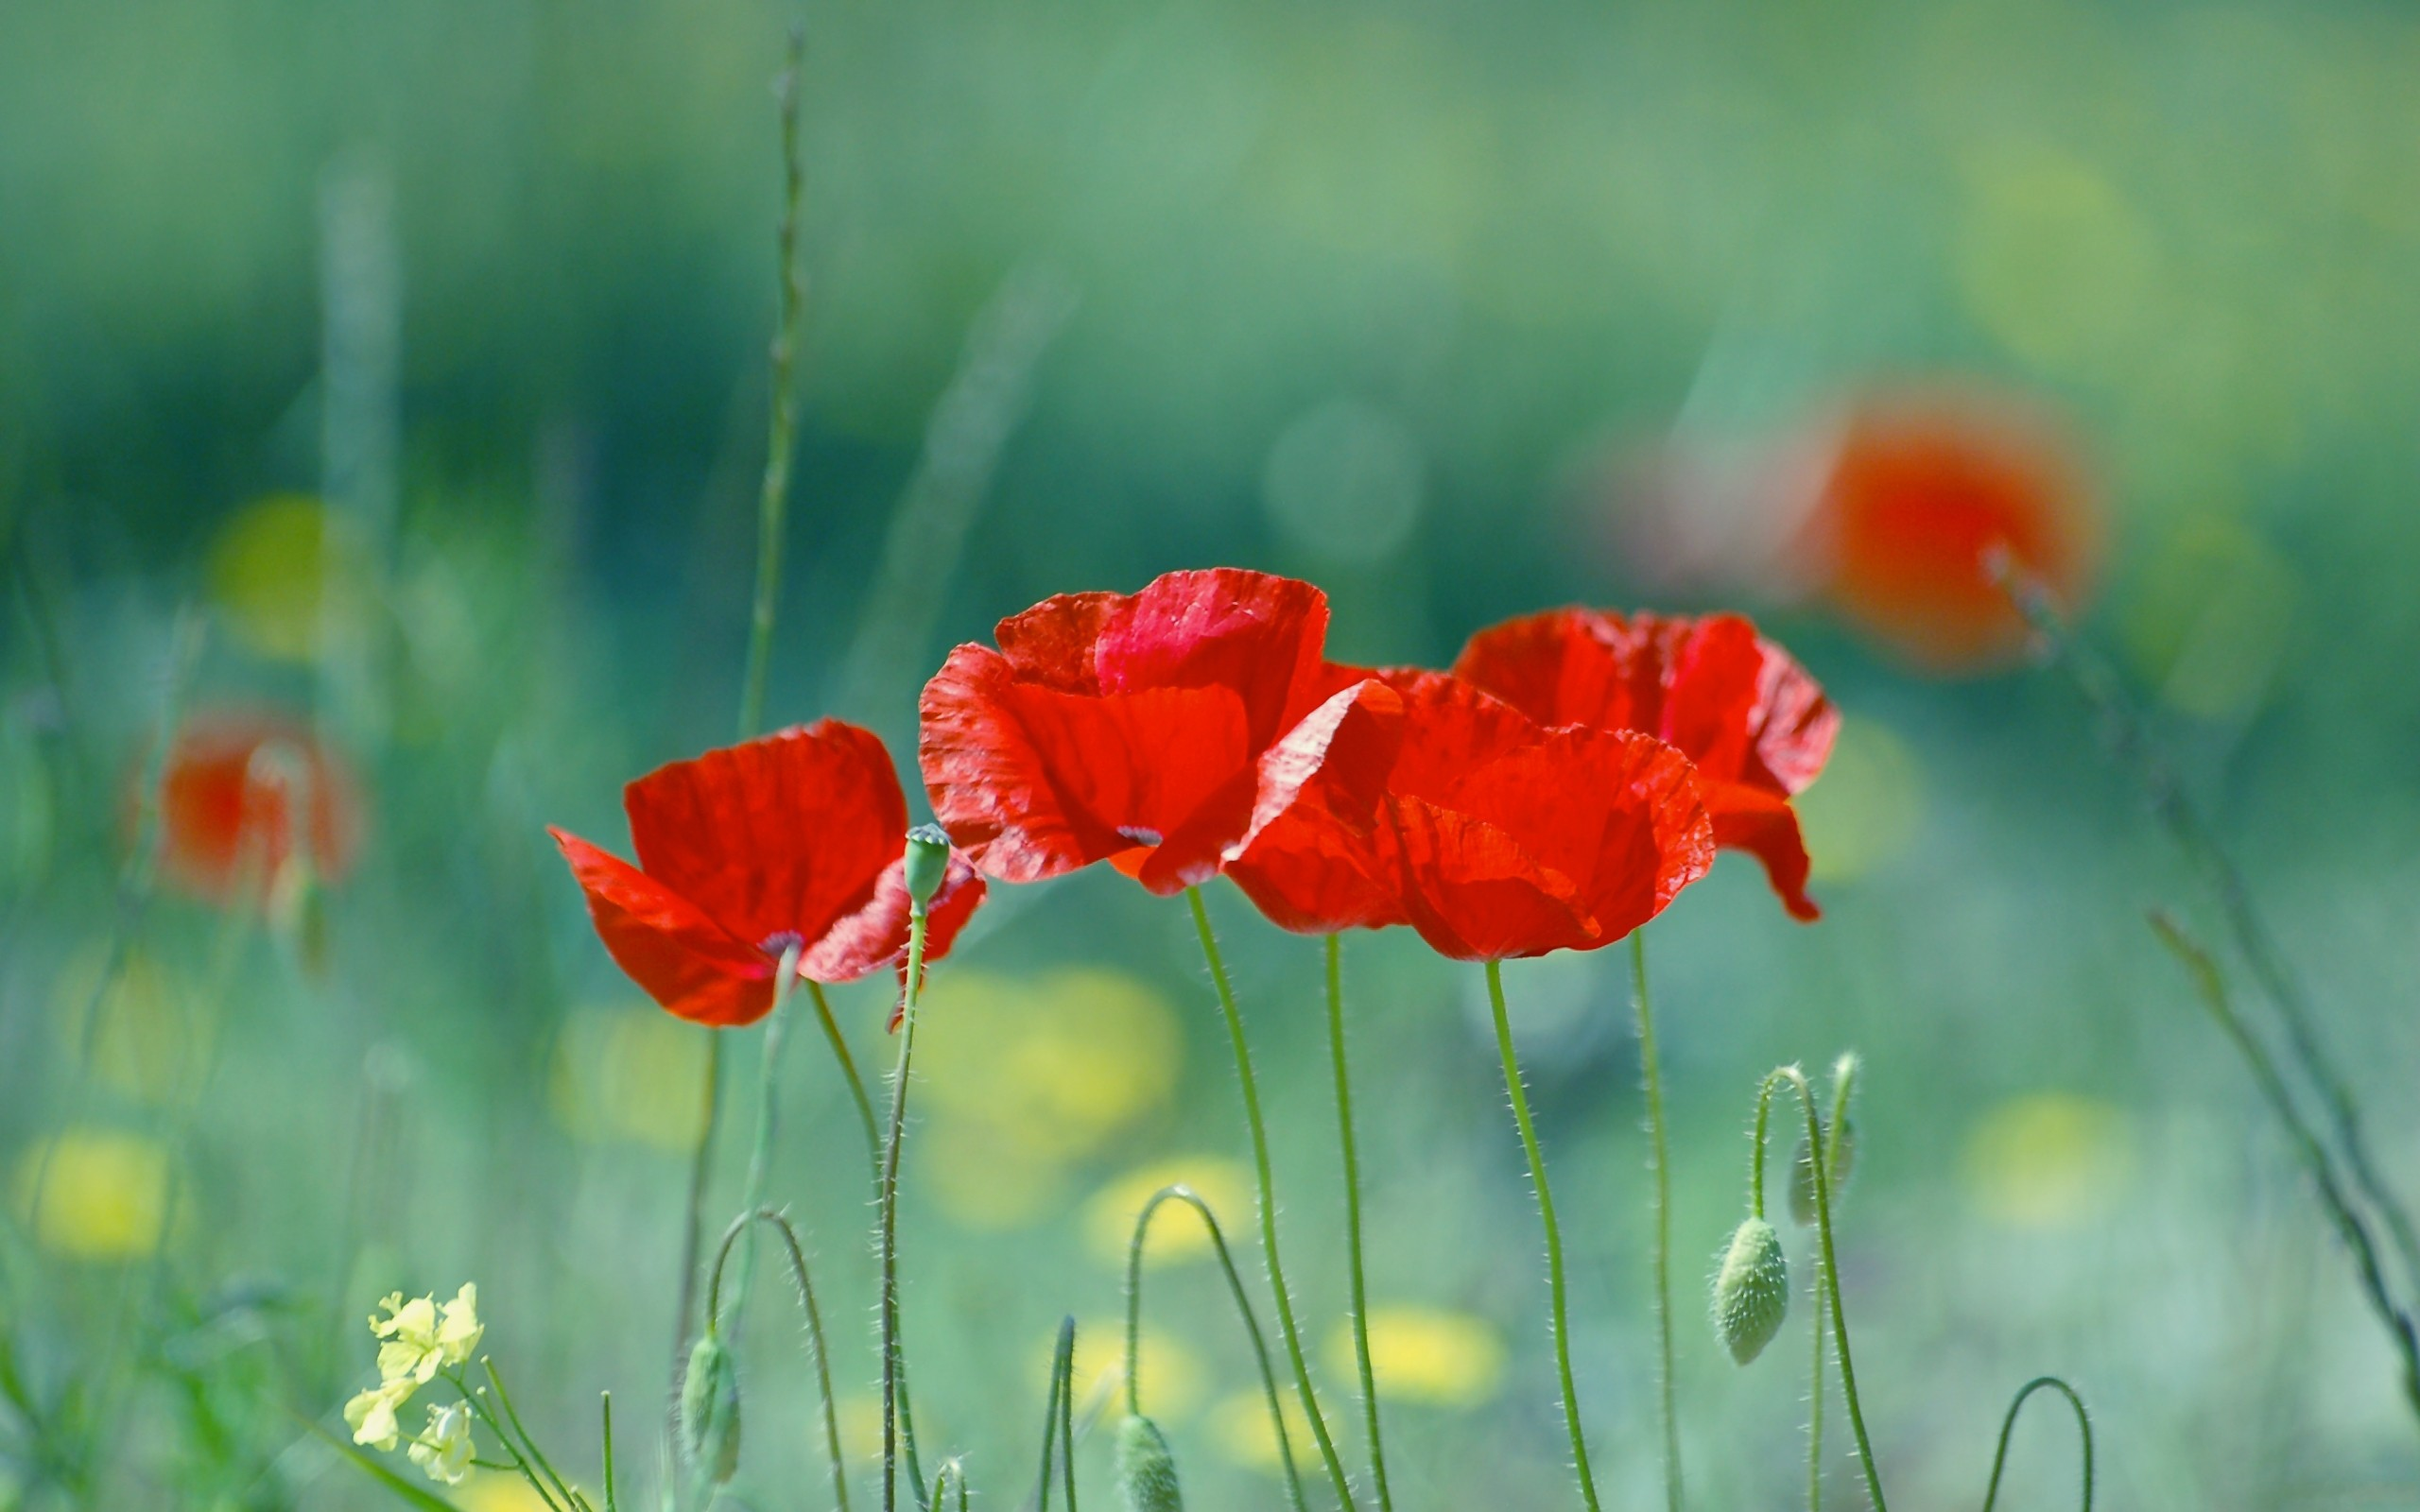 flowers, poppy, red flowers - desktop wallpaper